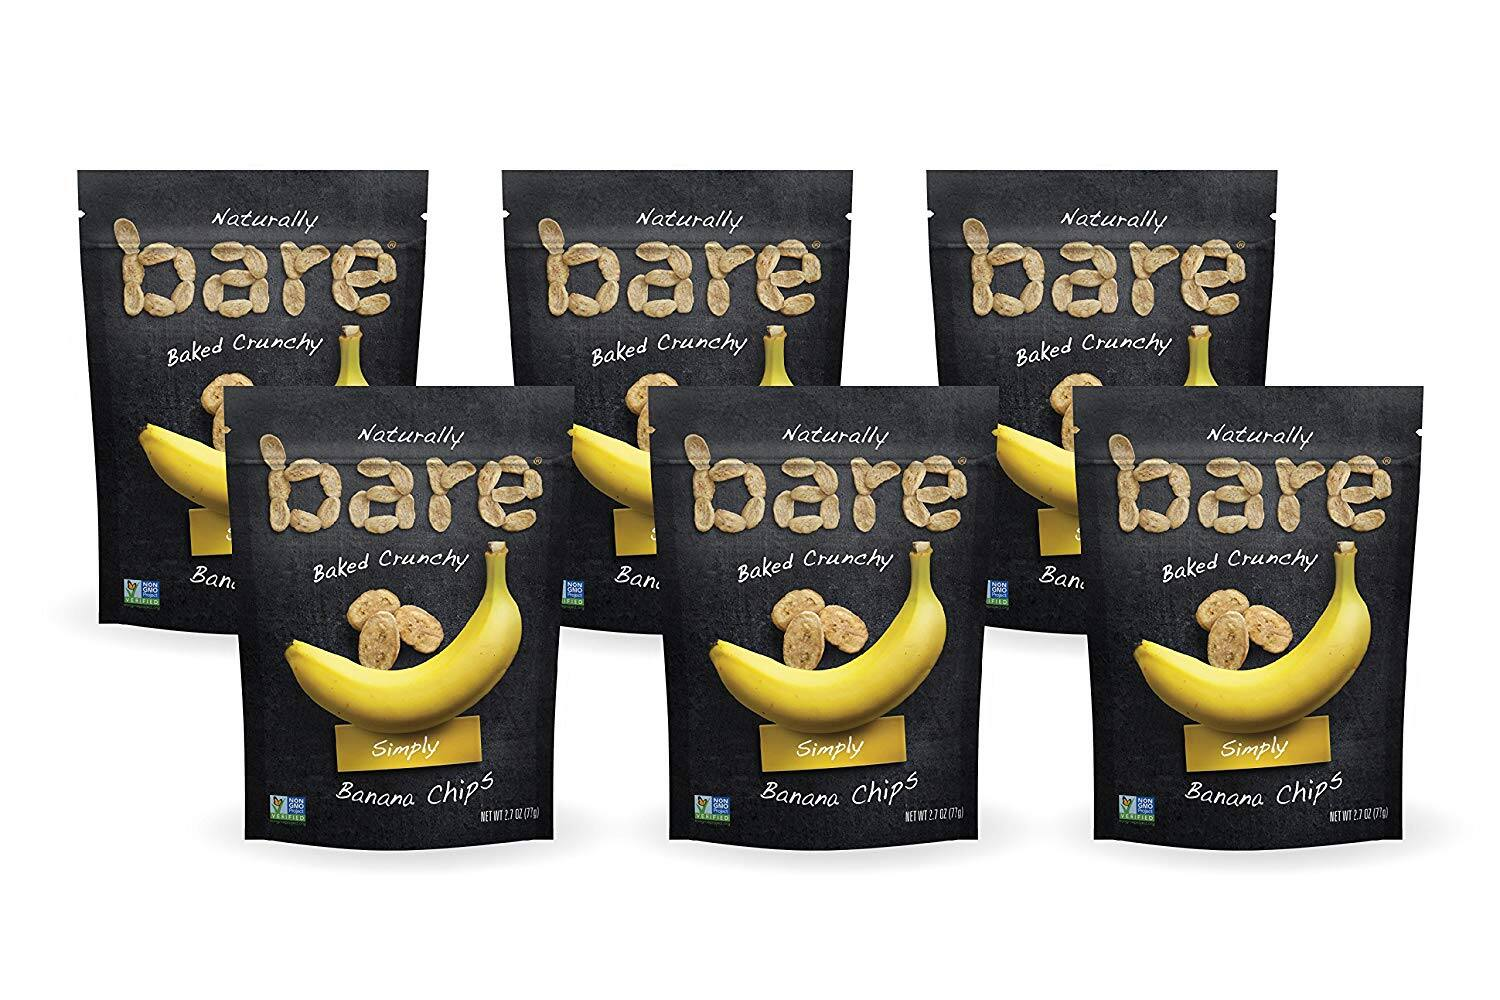 Bare Baked Crunchy Banana Chips, Simply, Gluten Free, 2.7 Ounce, Pack of 6: $12.10 or less w/S&S and A/C